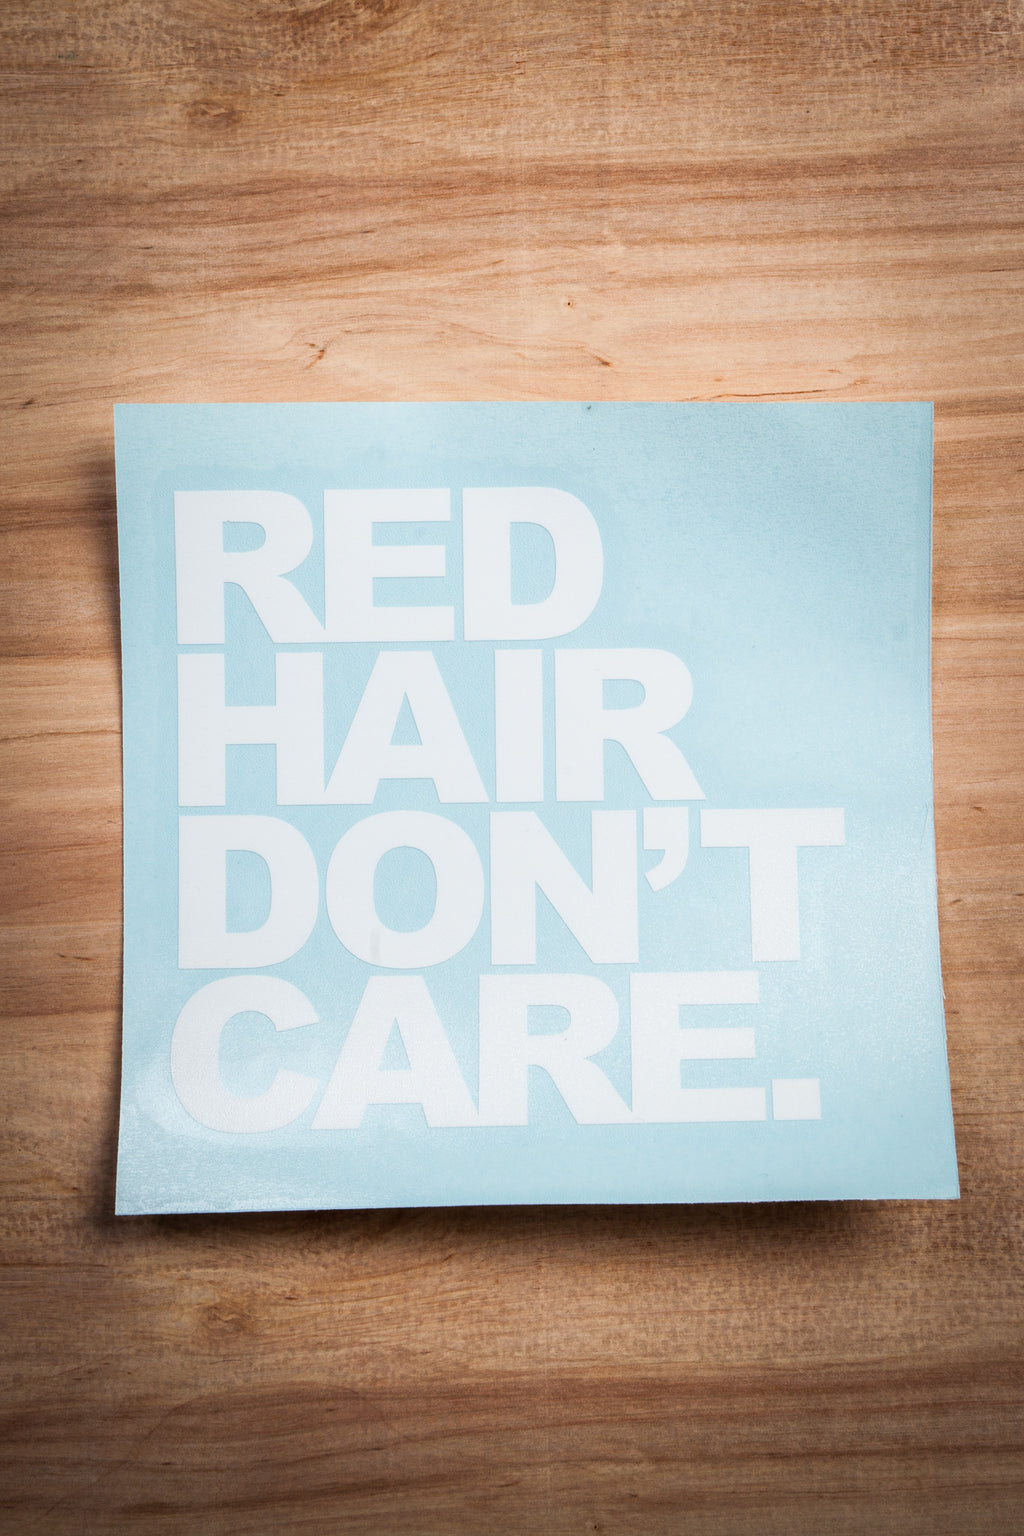 Red Hair Don't Care Transfer Sticker Ginger Problems